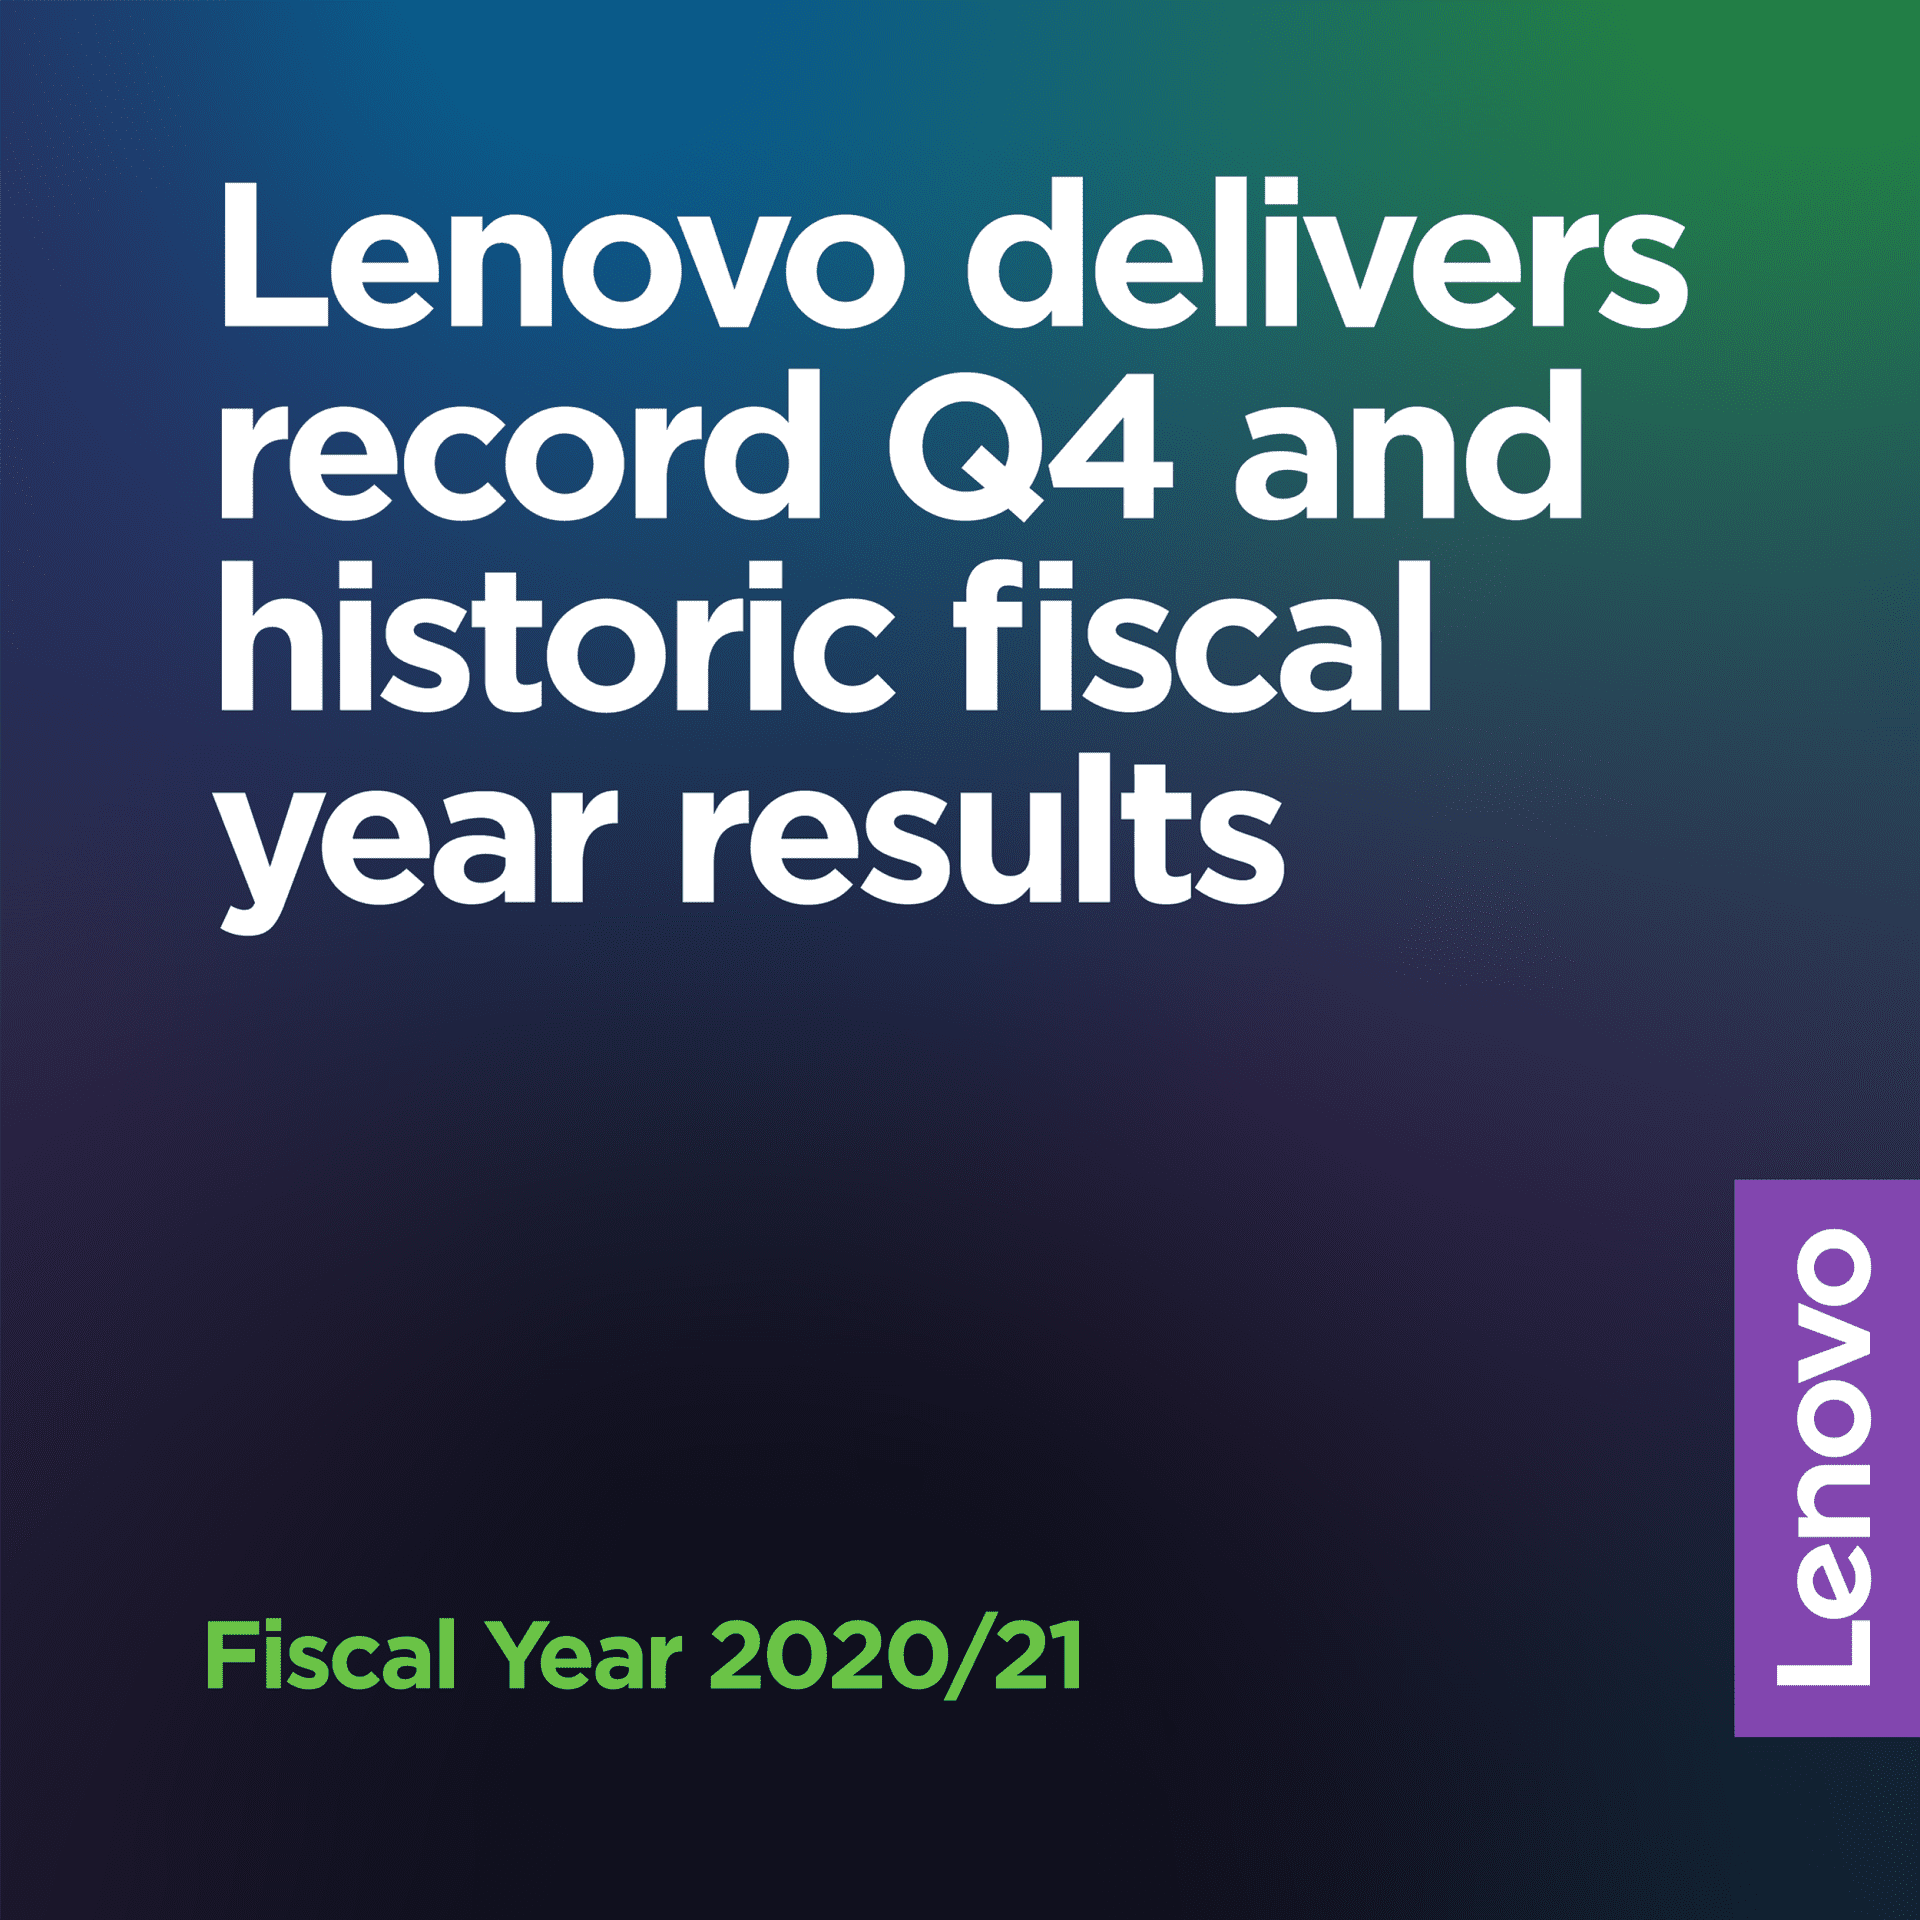 Lenovo has earned $60 billion for its 2020-21 fiscal year